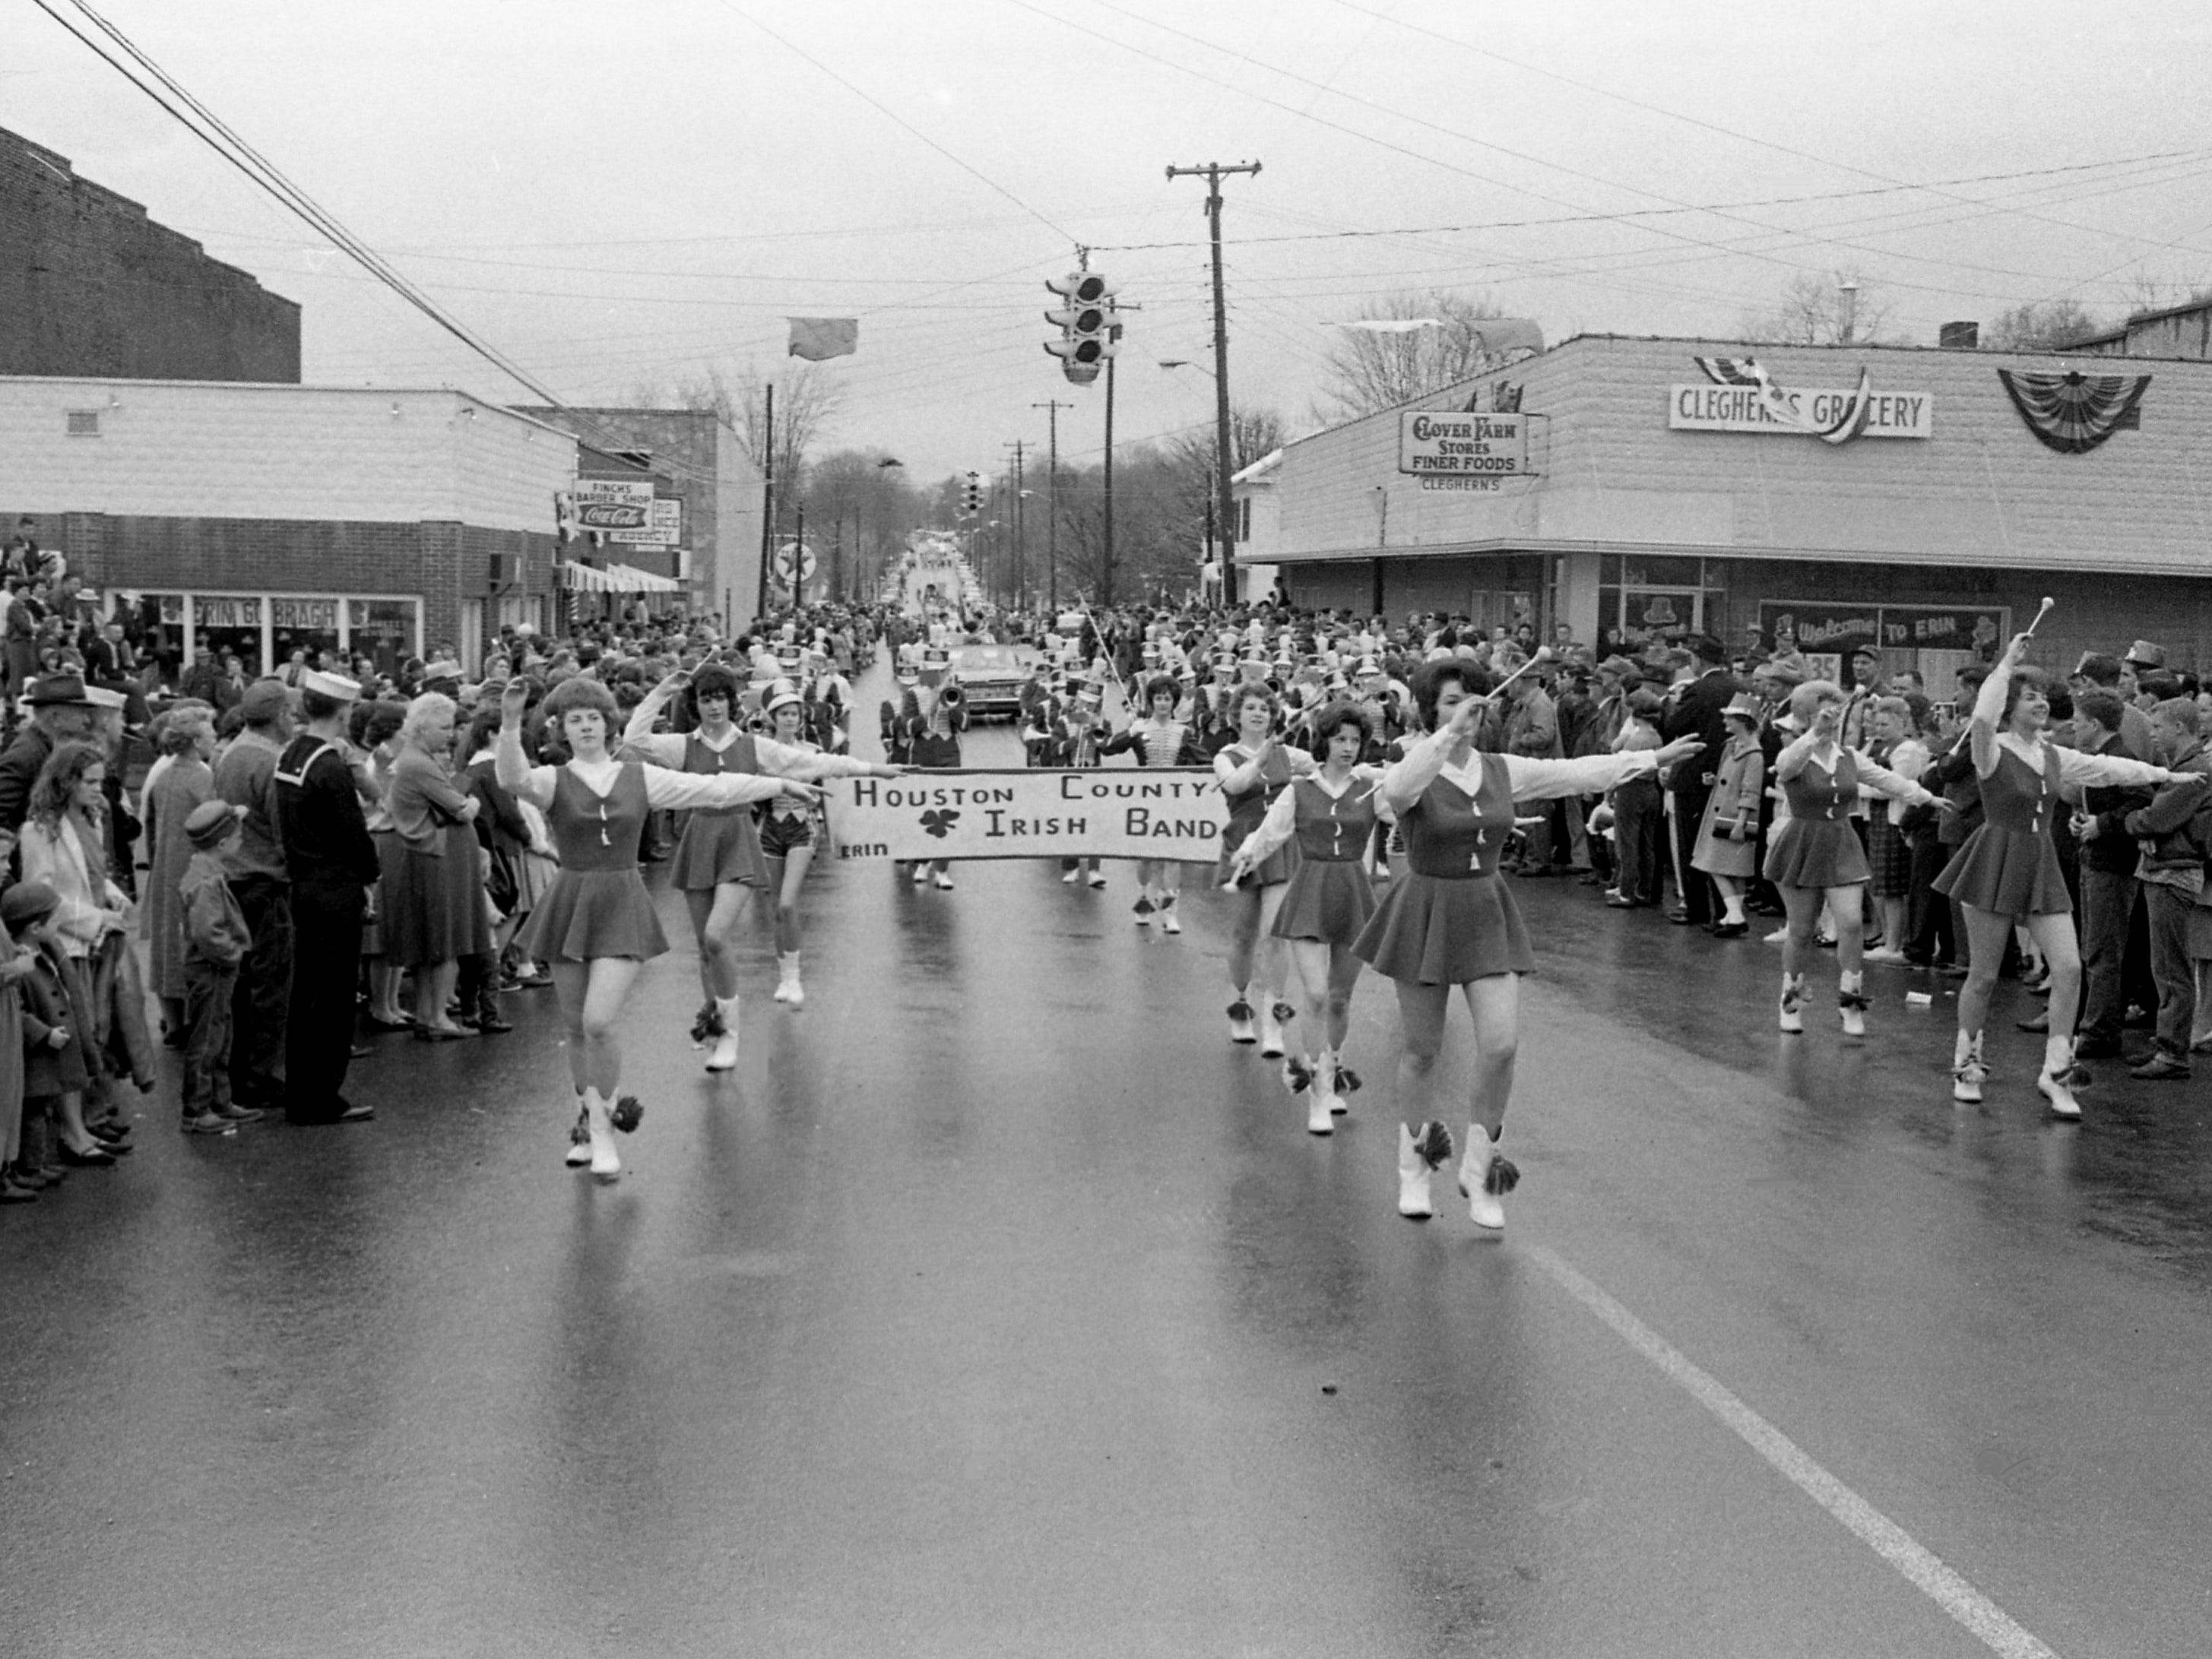 Houston County High School Irish Band marches during the parade of the second annual Wearing of the Green celebration in Erin, Tenn. March 14, 1964. The festivities got a three day start on St. Patrick's Day.